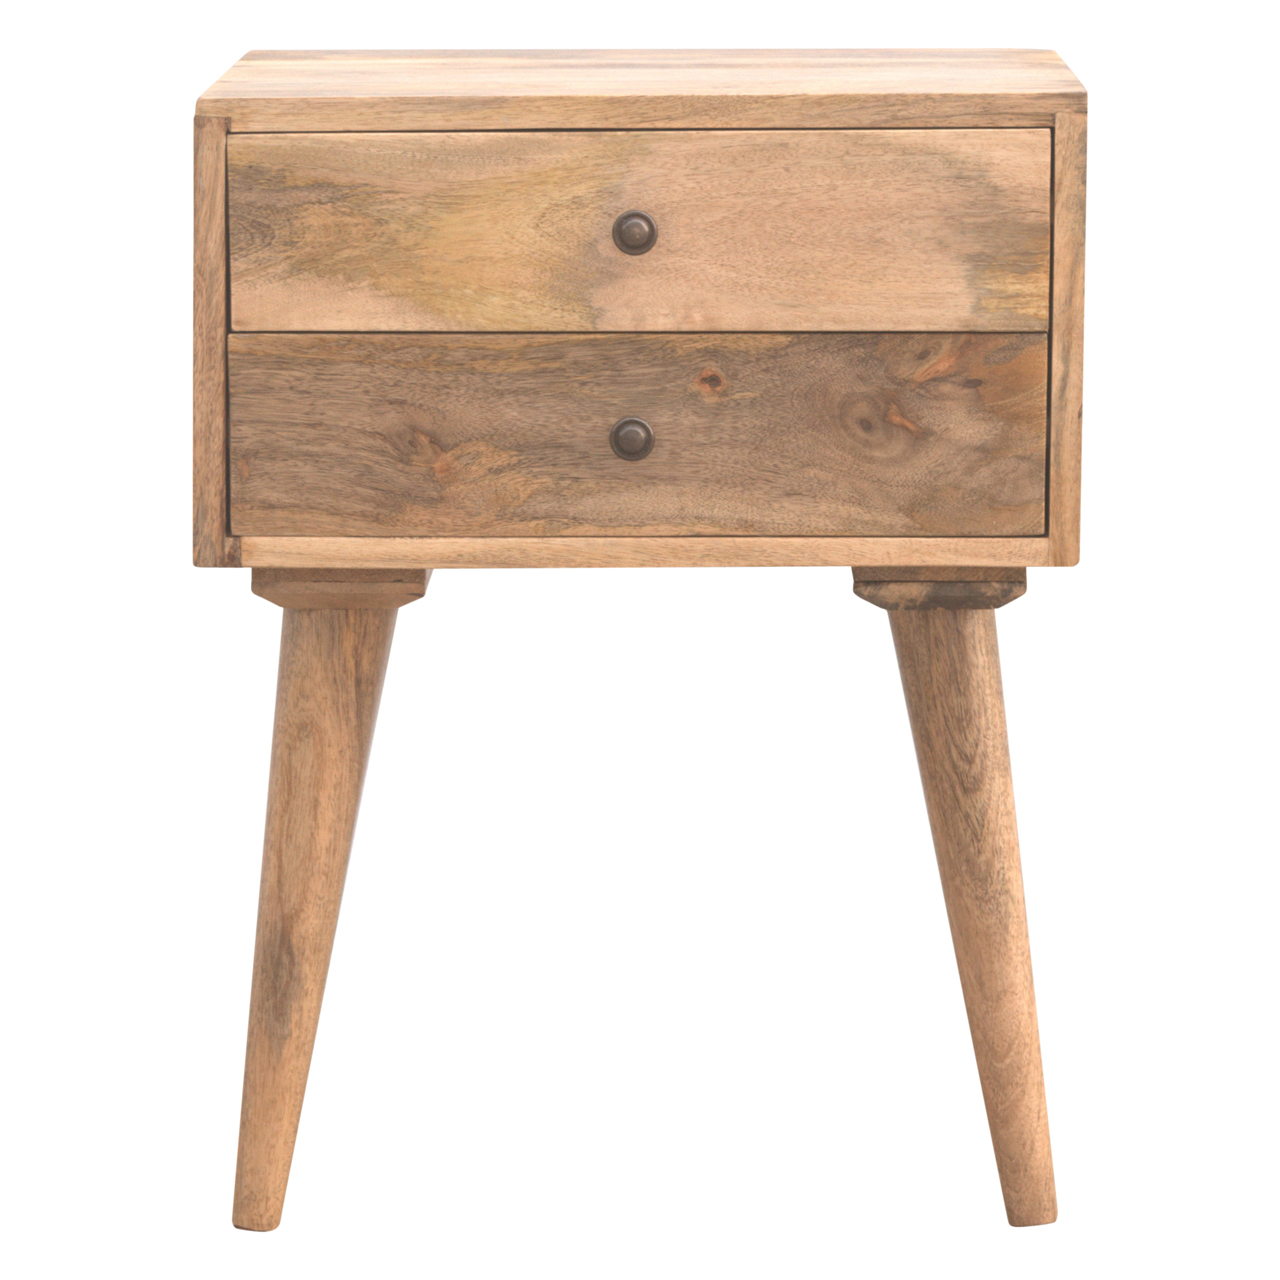 IN138 2 Drawer Solid Wood Bedside Table